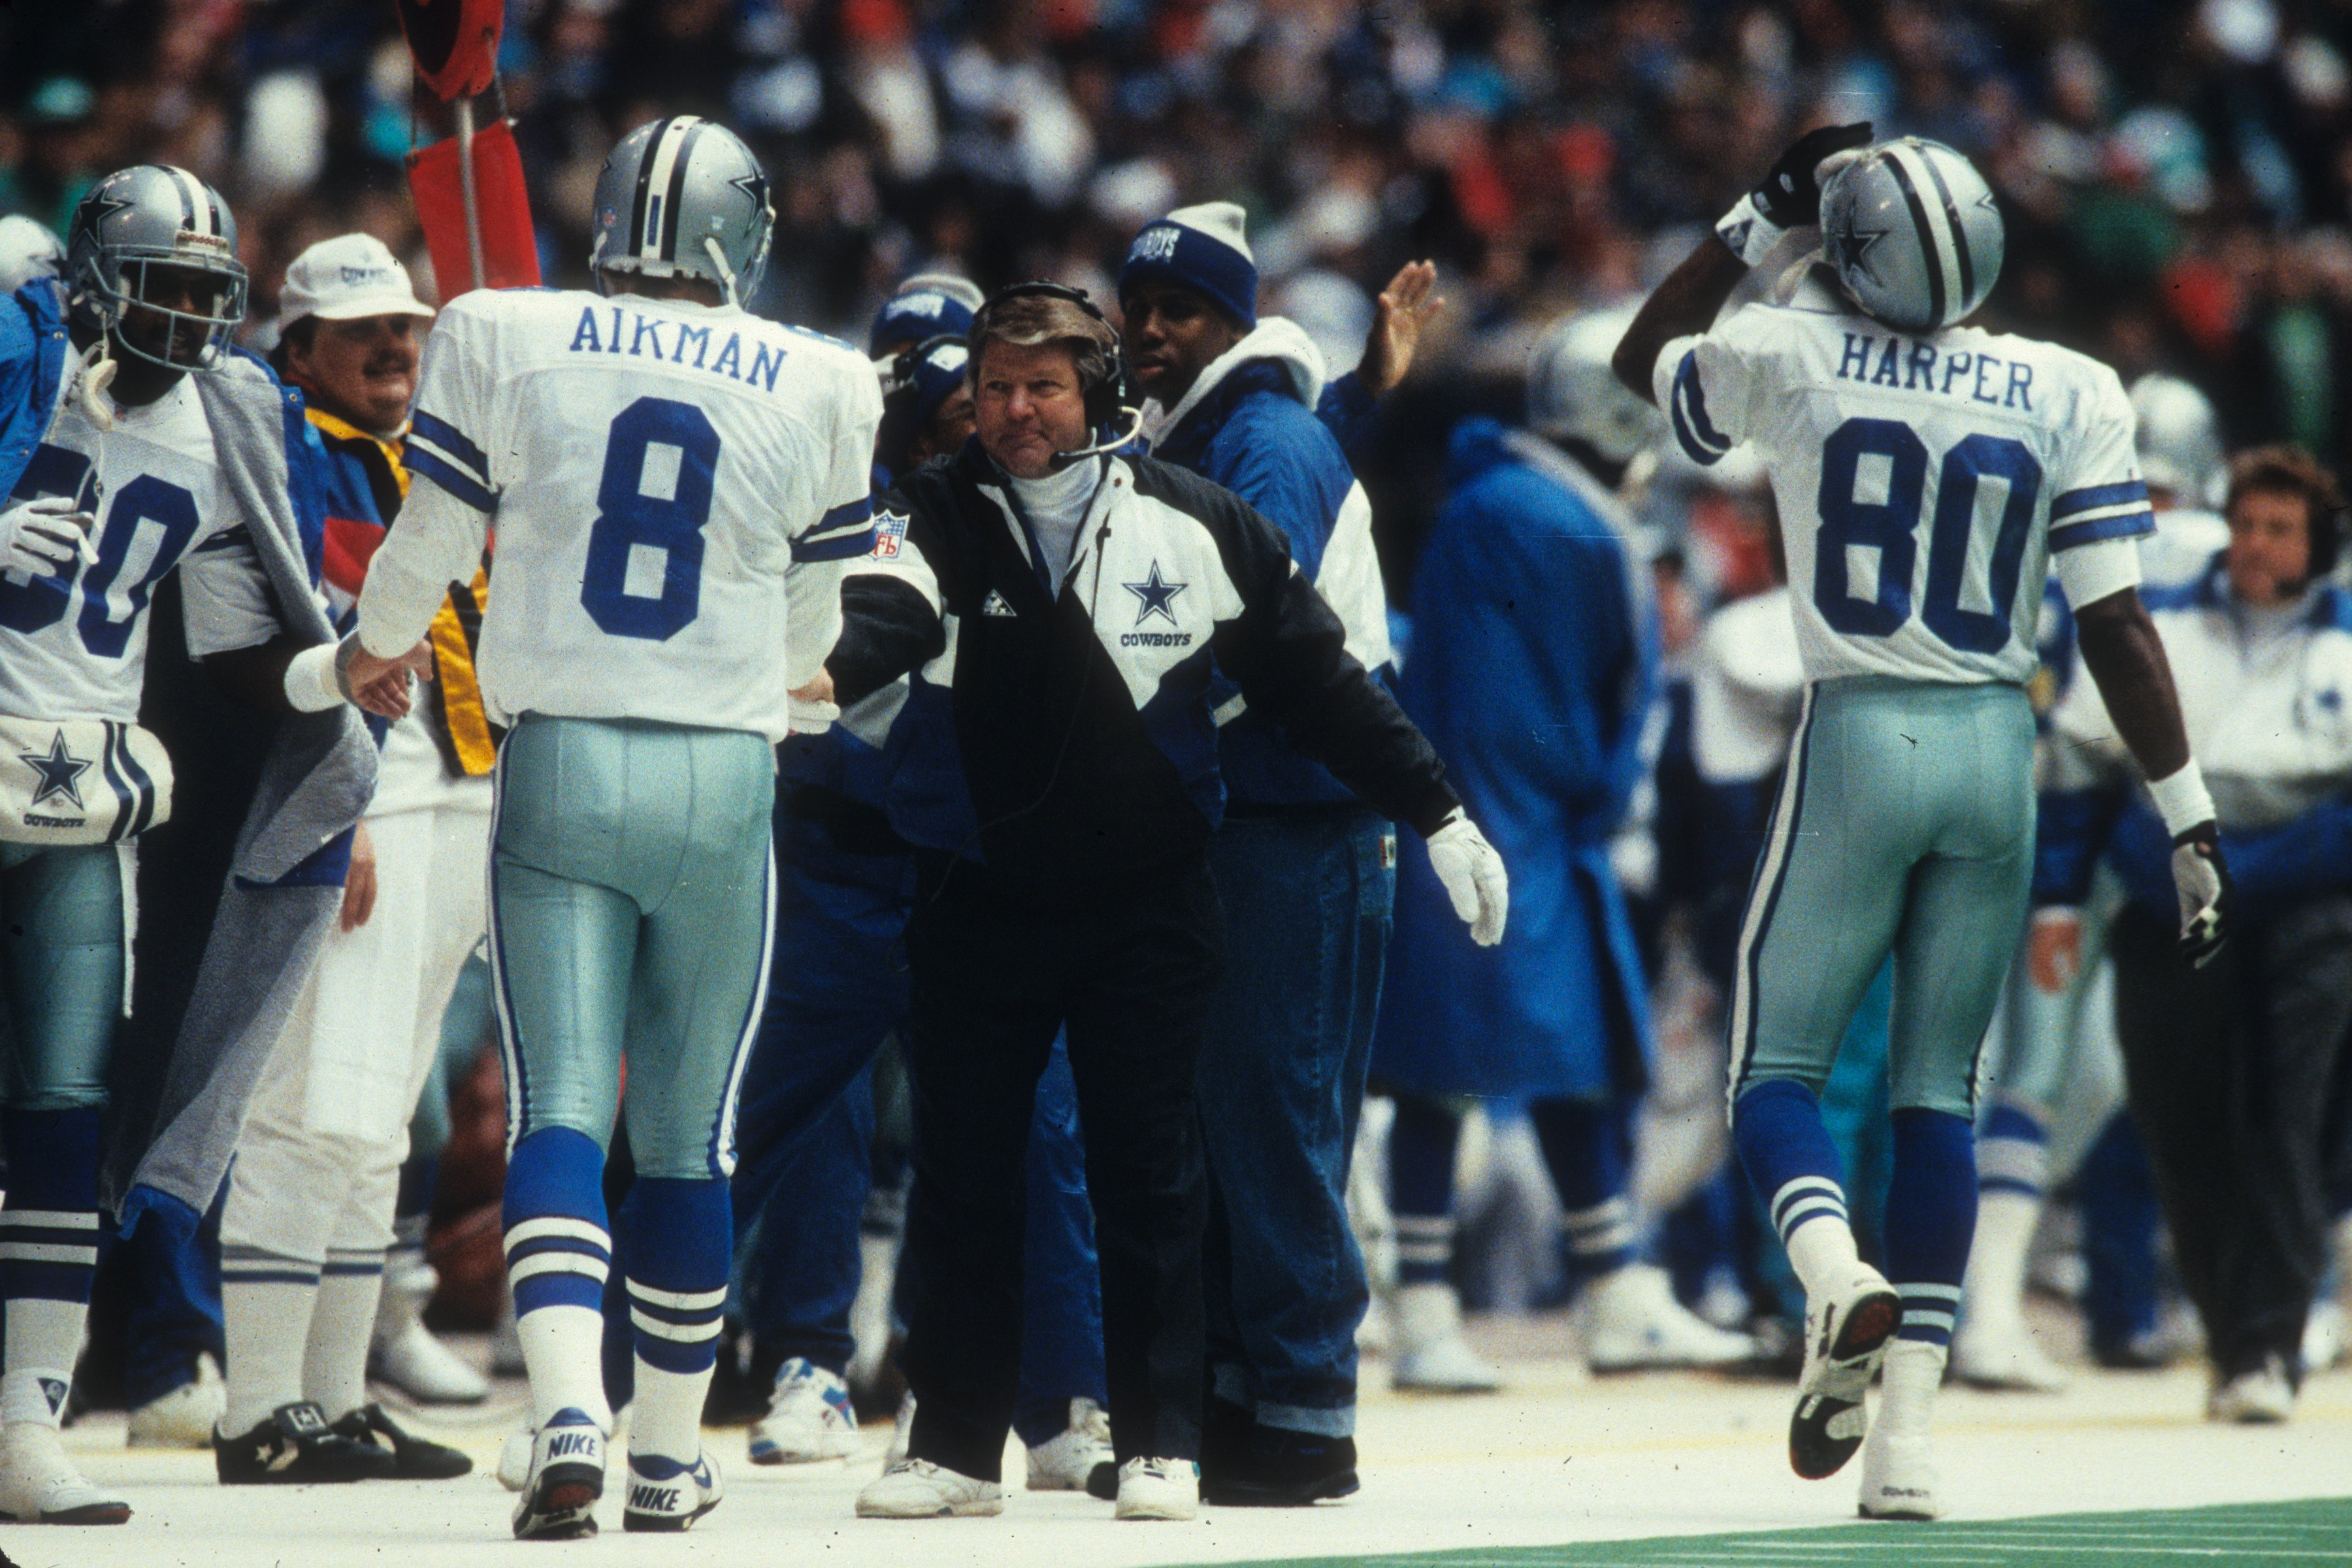 Troy Aikman Explains Why Jimmy Johnson Was a Great Coach but 'Even Better as a Talent Evaluator'